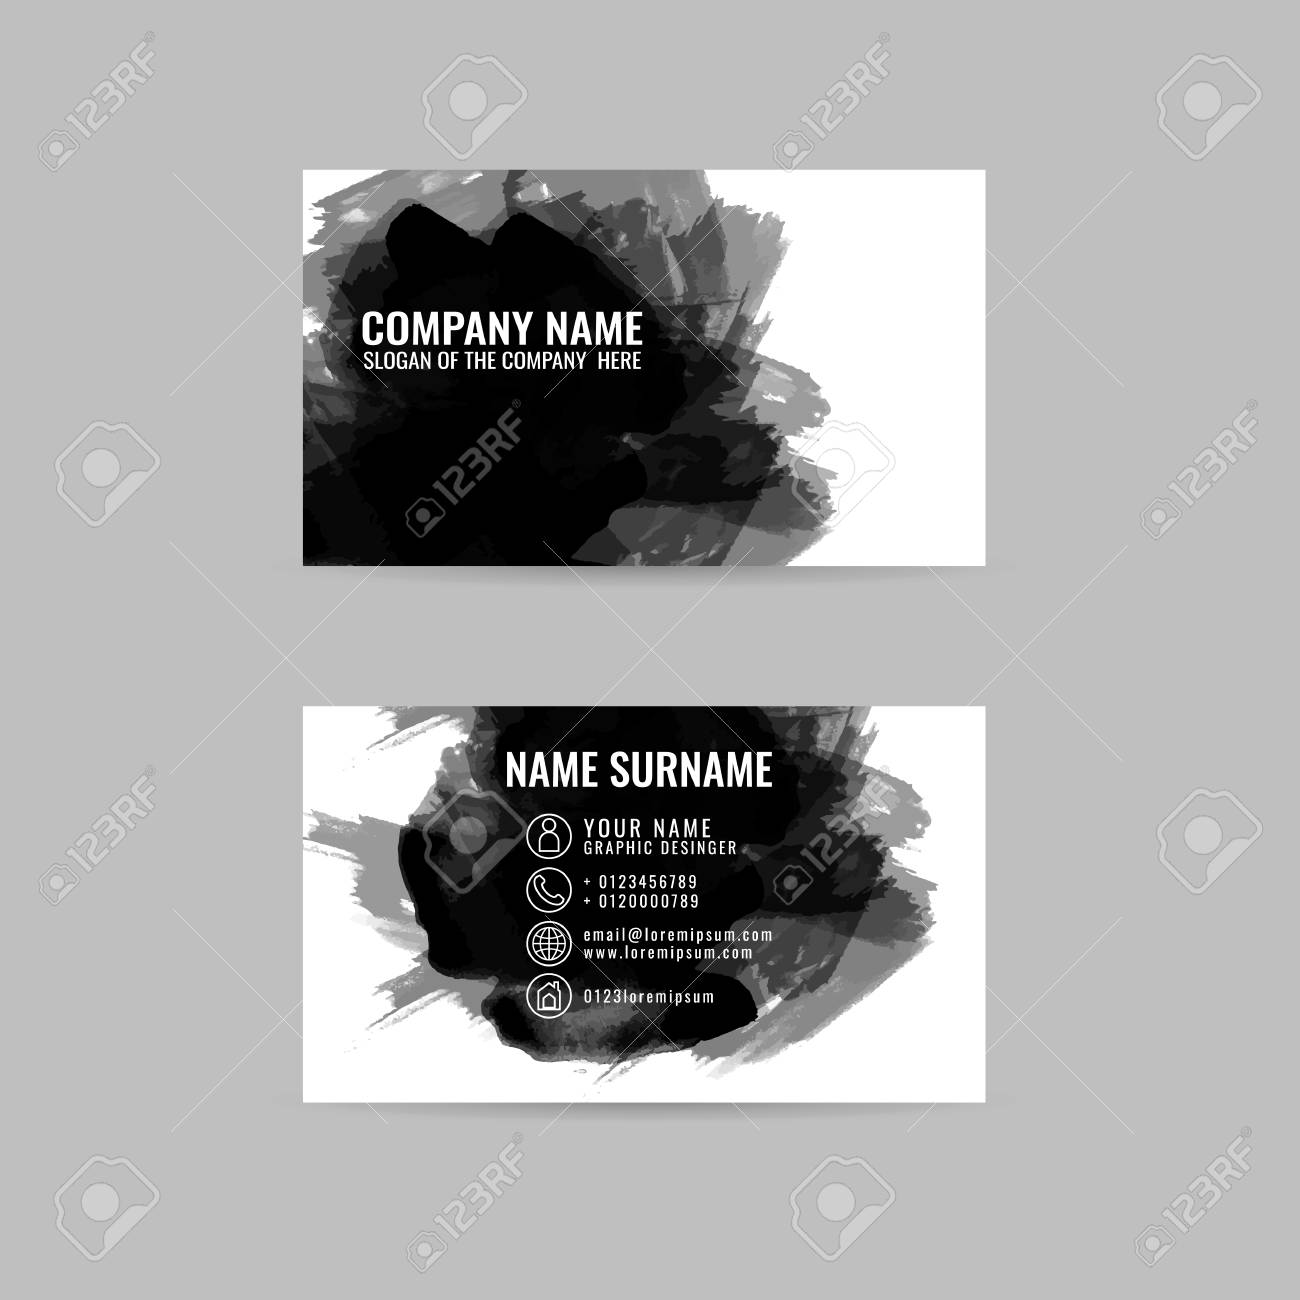 Business Cards Template With Hand Painted Brush Strokes Black Ink